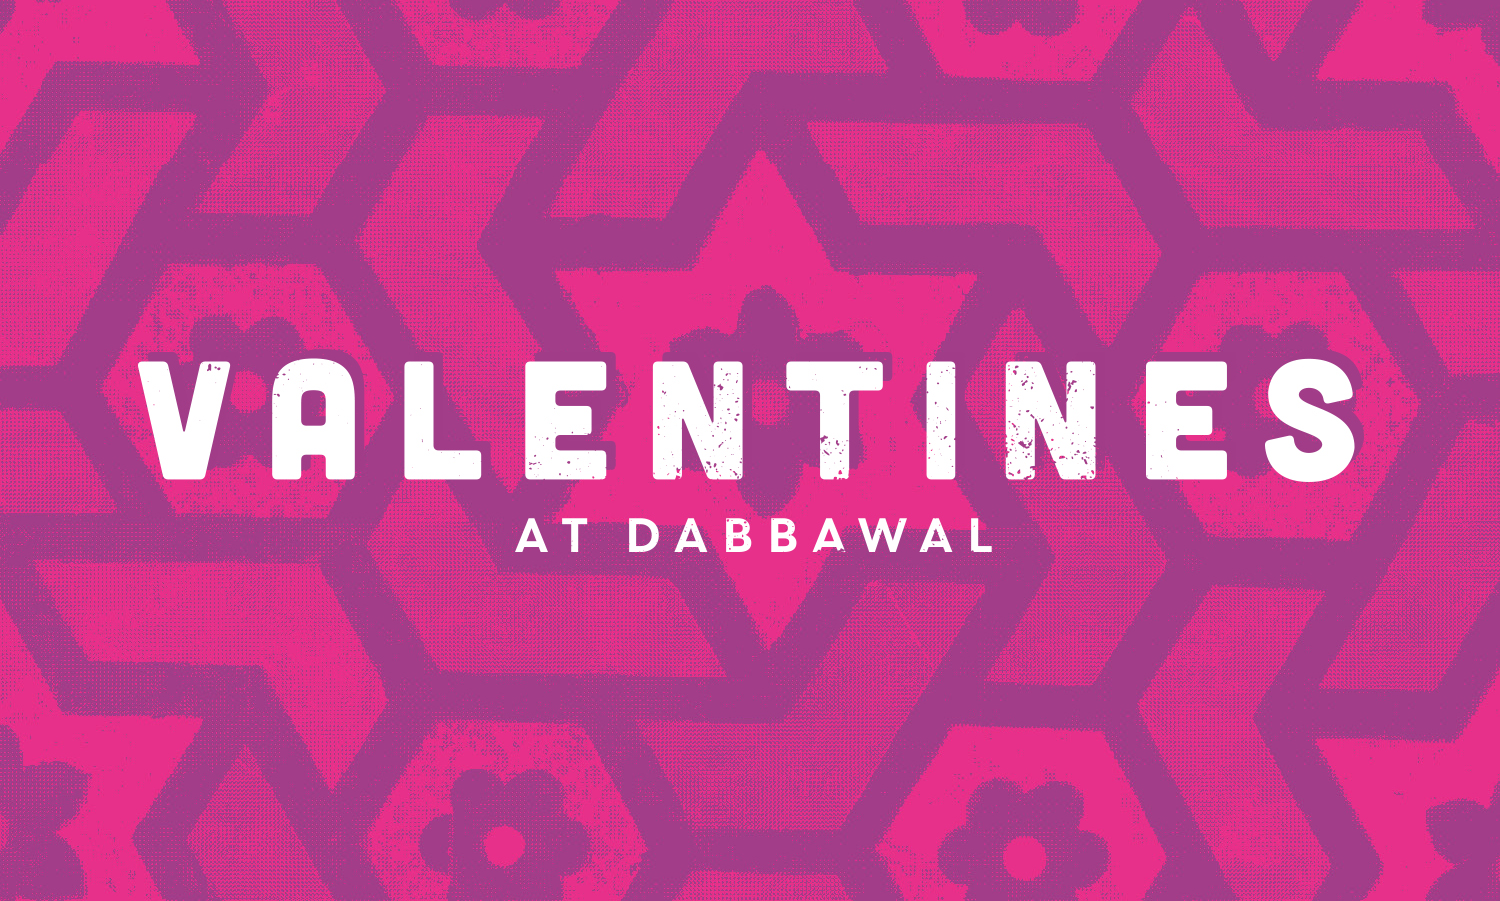 dabbawal-indian-street-food-newcastle-valentines